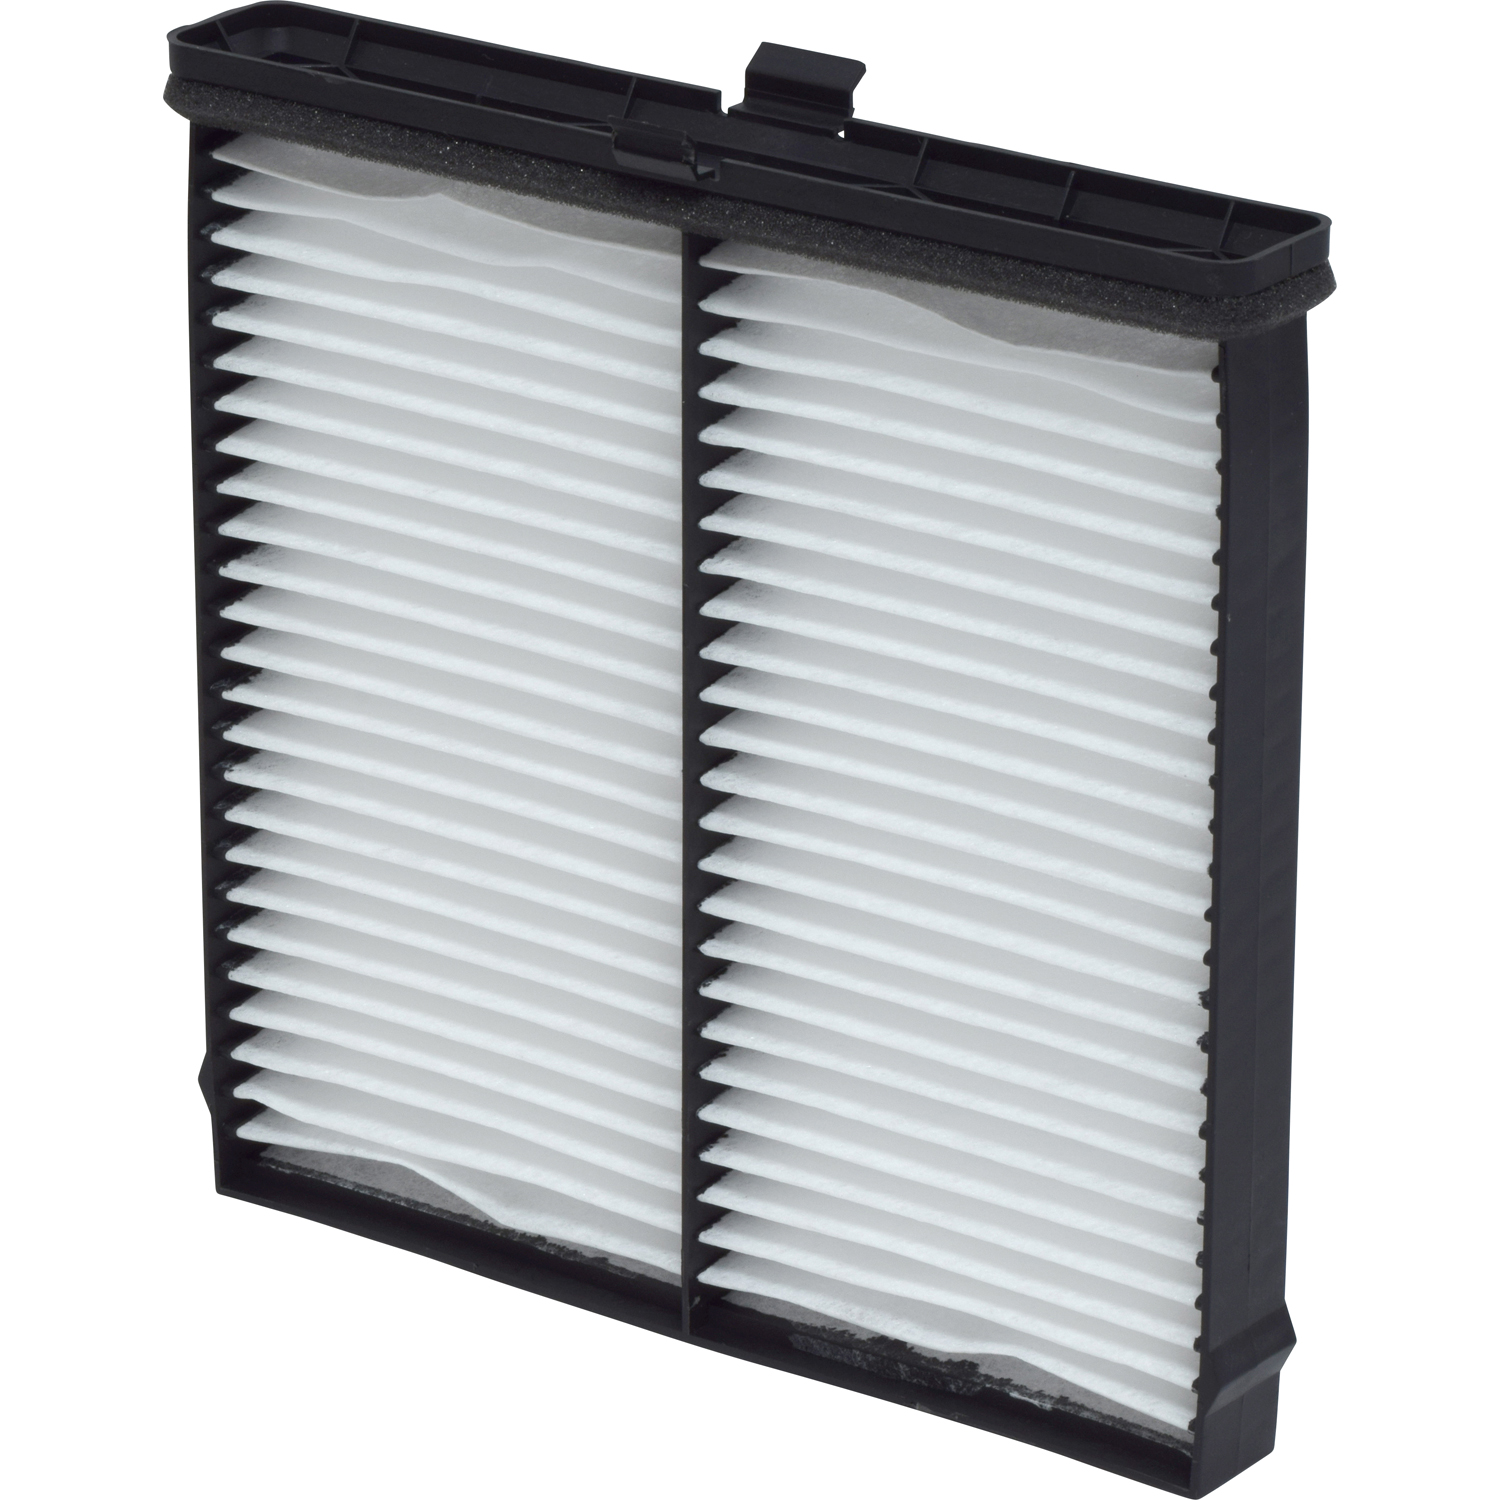 Particulate Cabin Air Filter FI 1336C